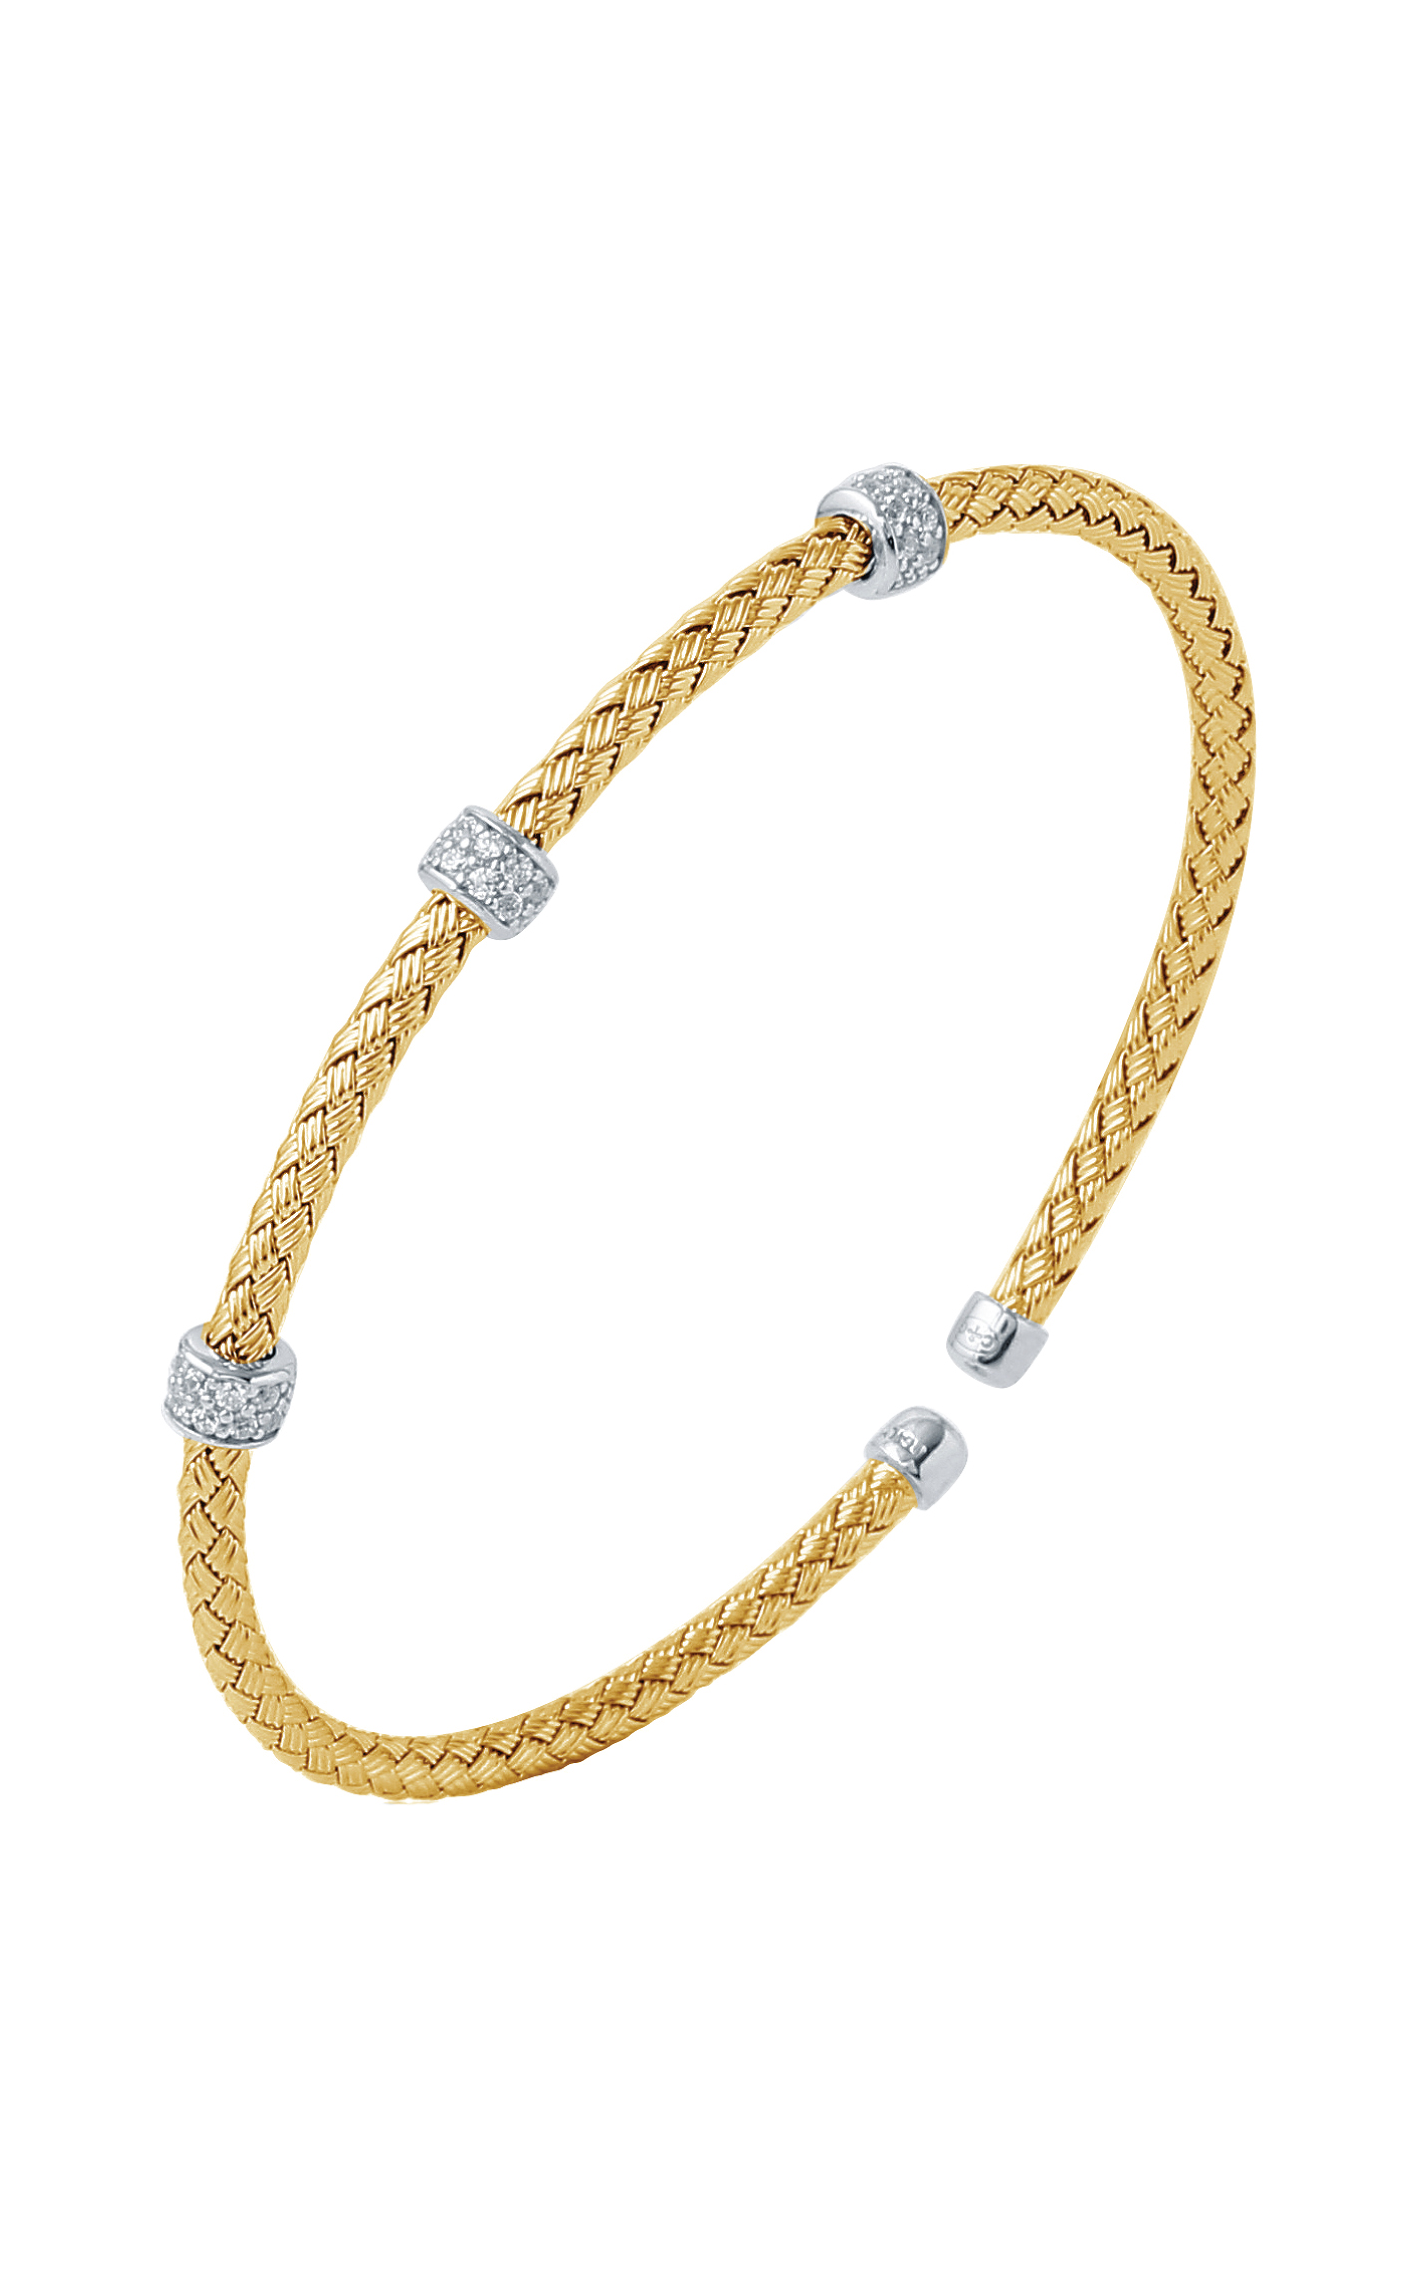 Charles Garnier Bracelet Paolo Collection MLC8109YWZ product image